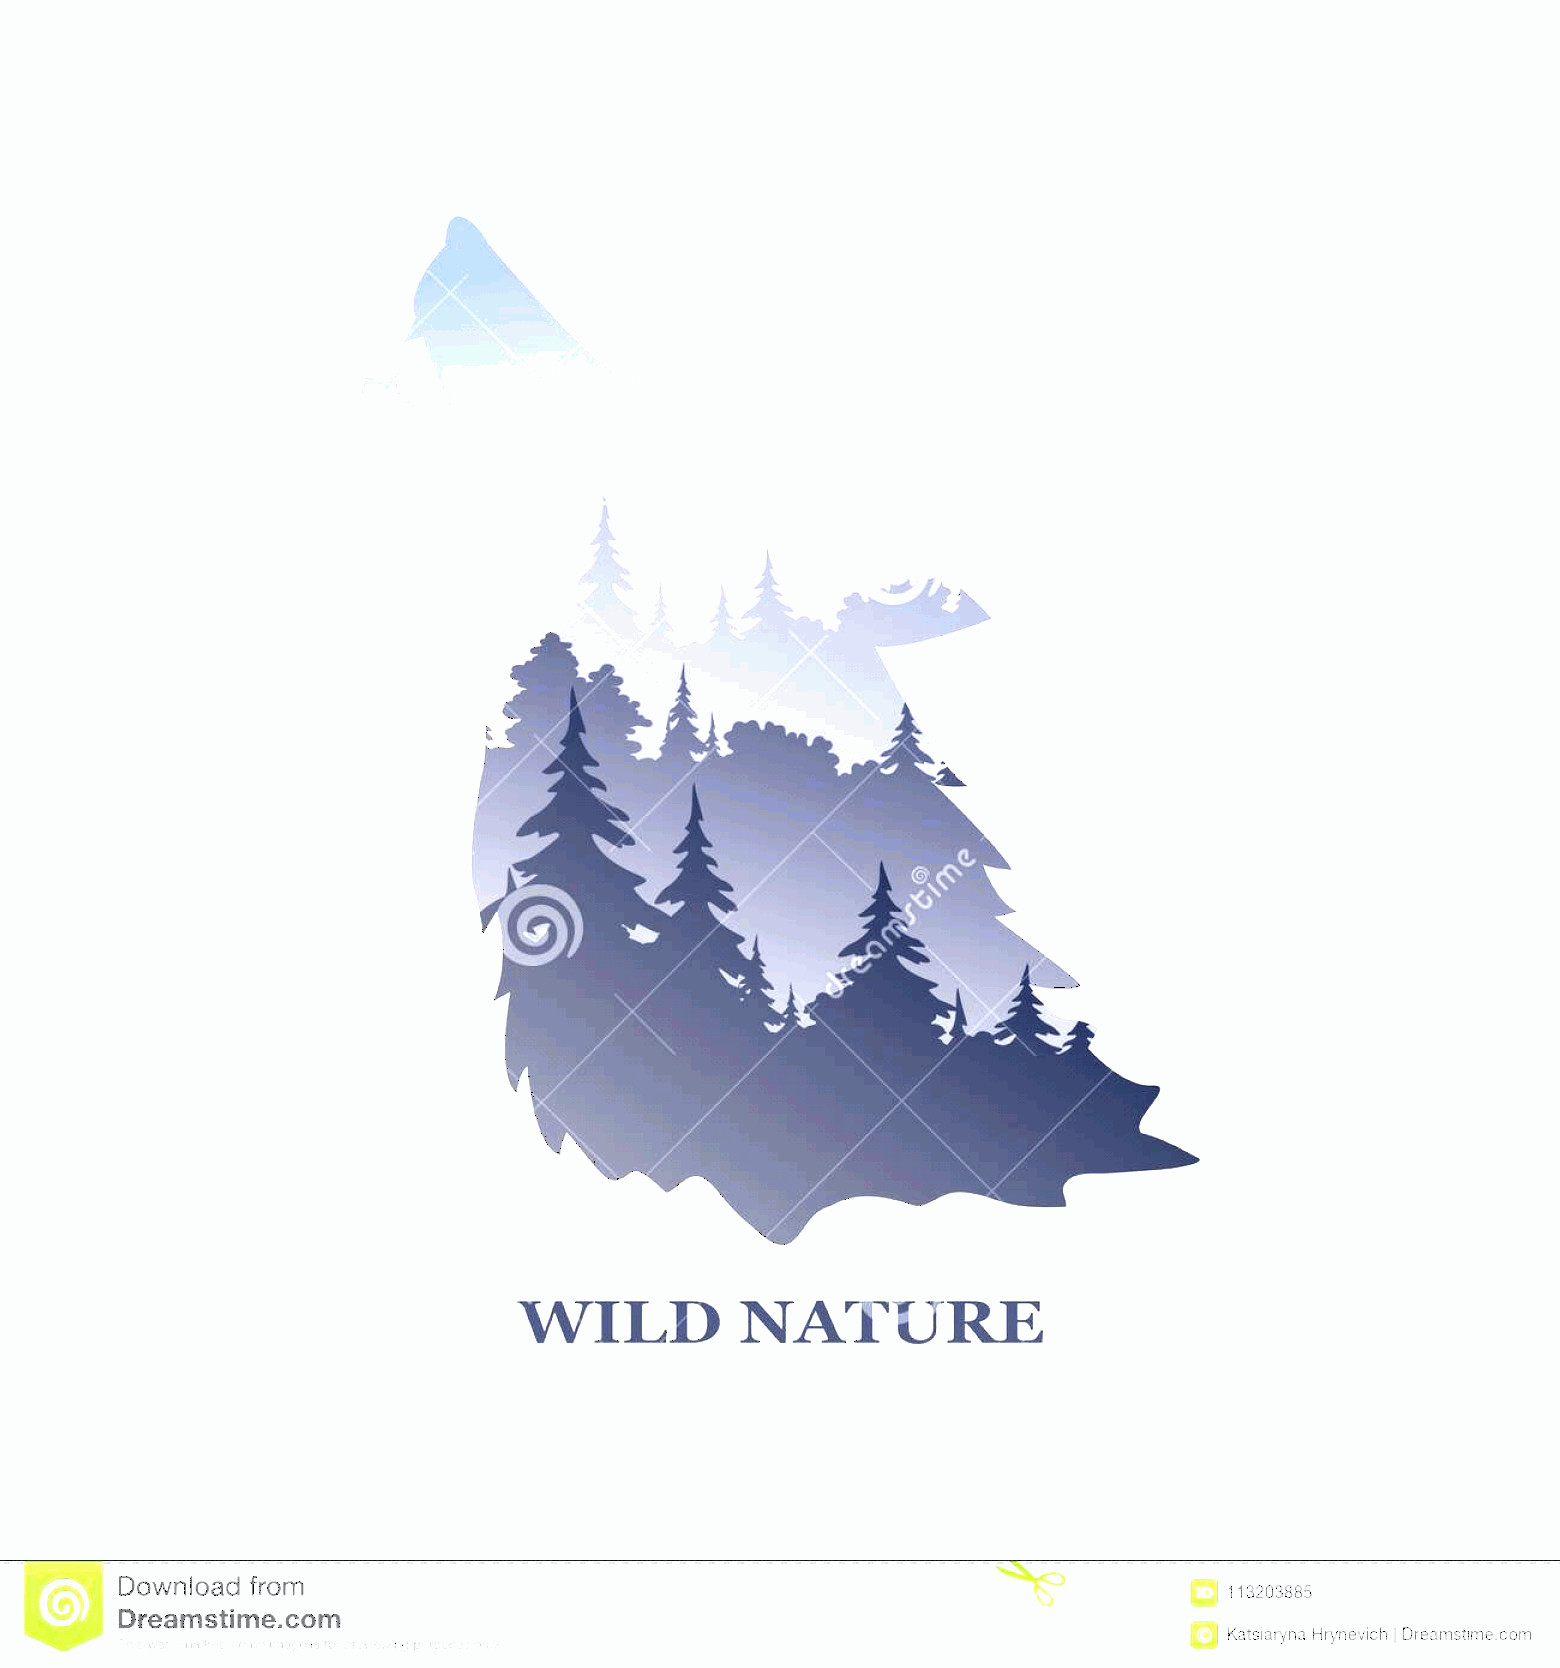 Wolf Vector Logo: Vector Logo Inscription Wildlife Nature Landscape Wild Wolf Illustration Image